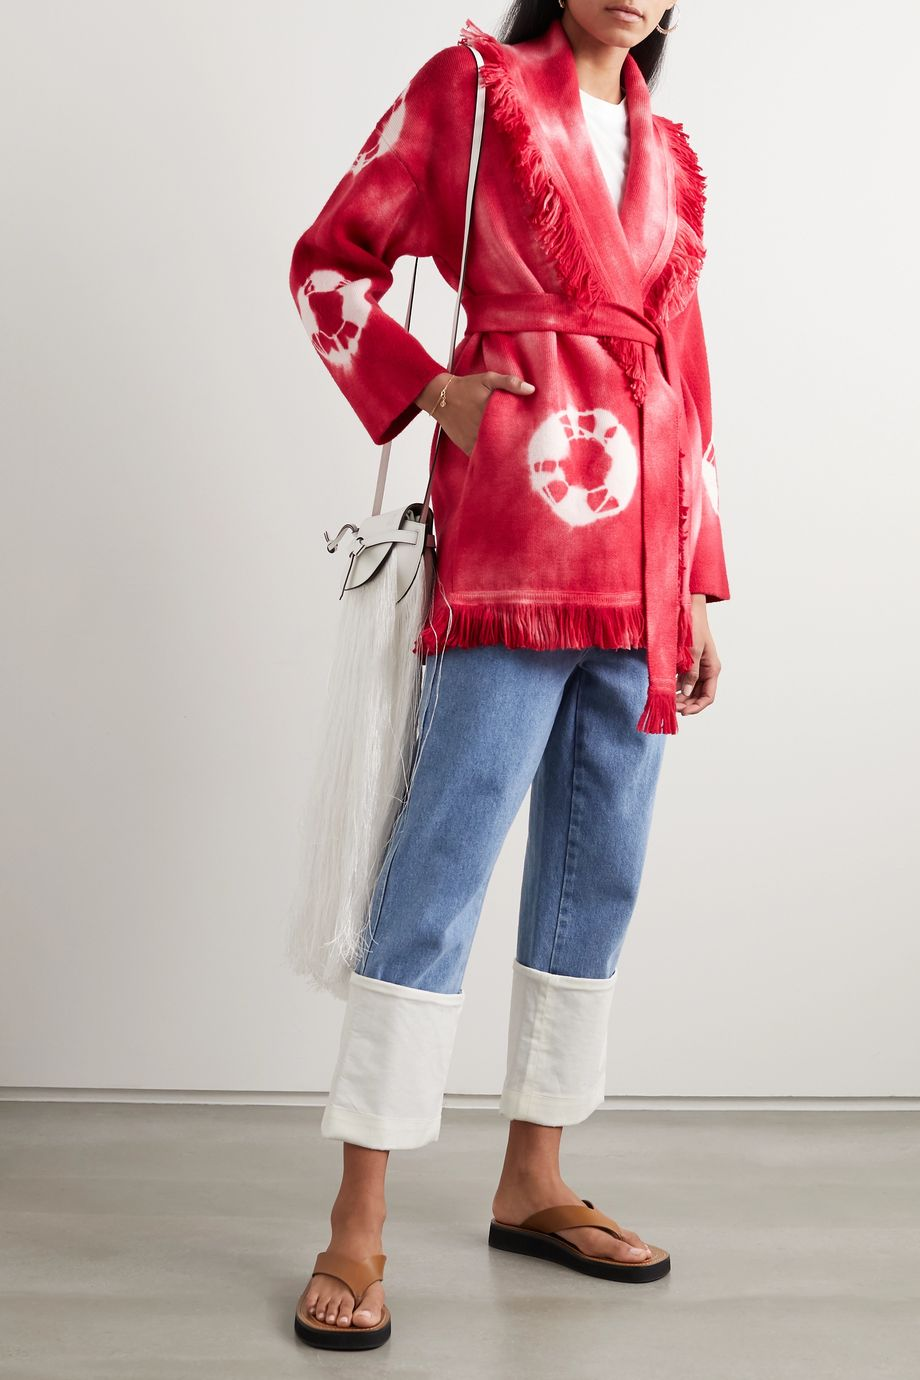 Alanui Baja belted fringed tie-dyed wool cardigan